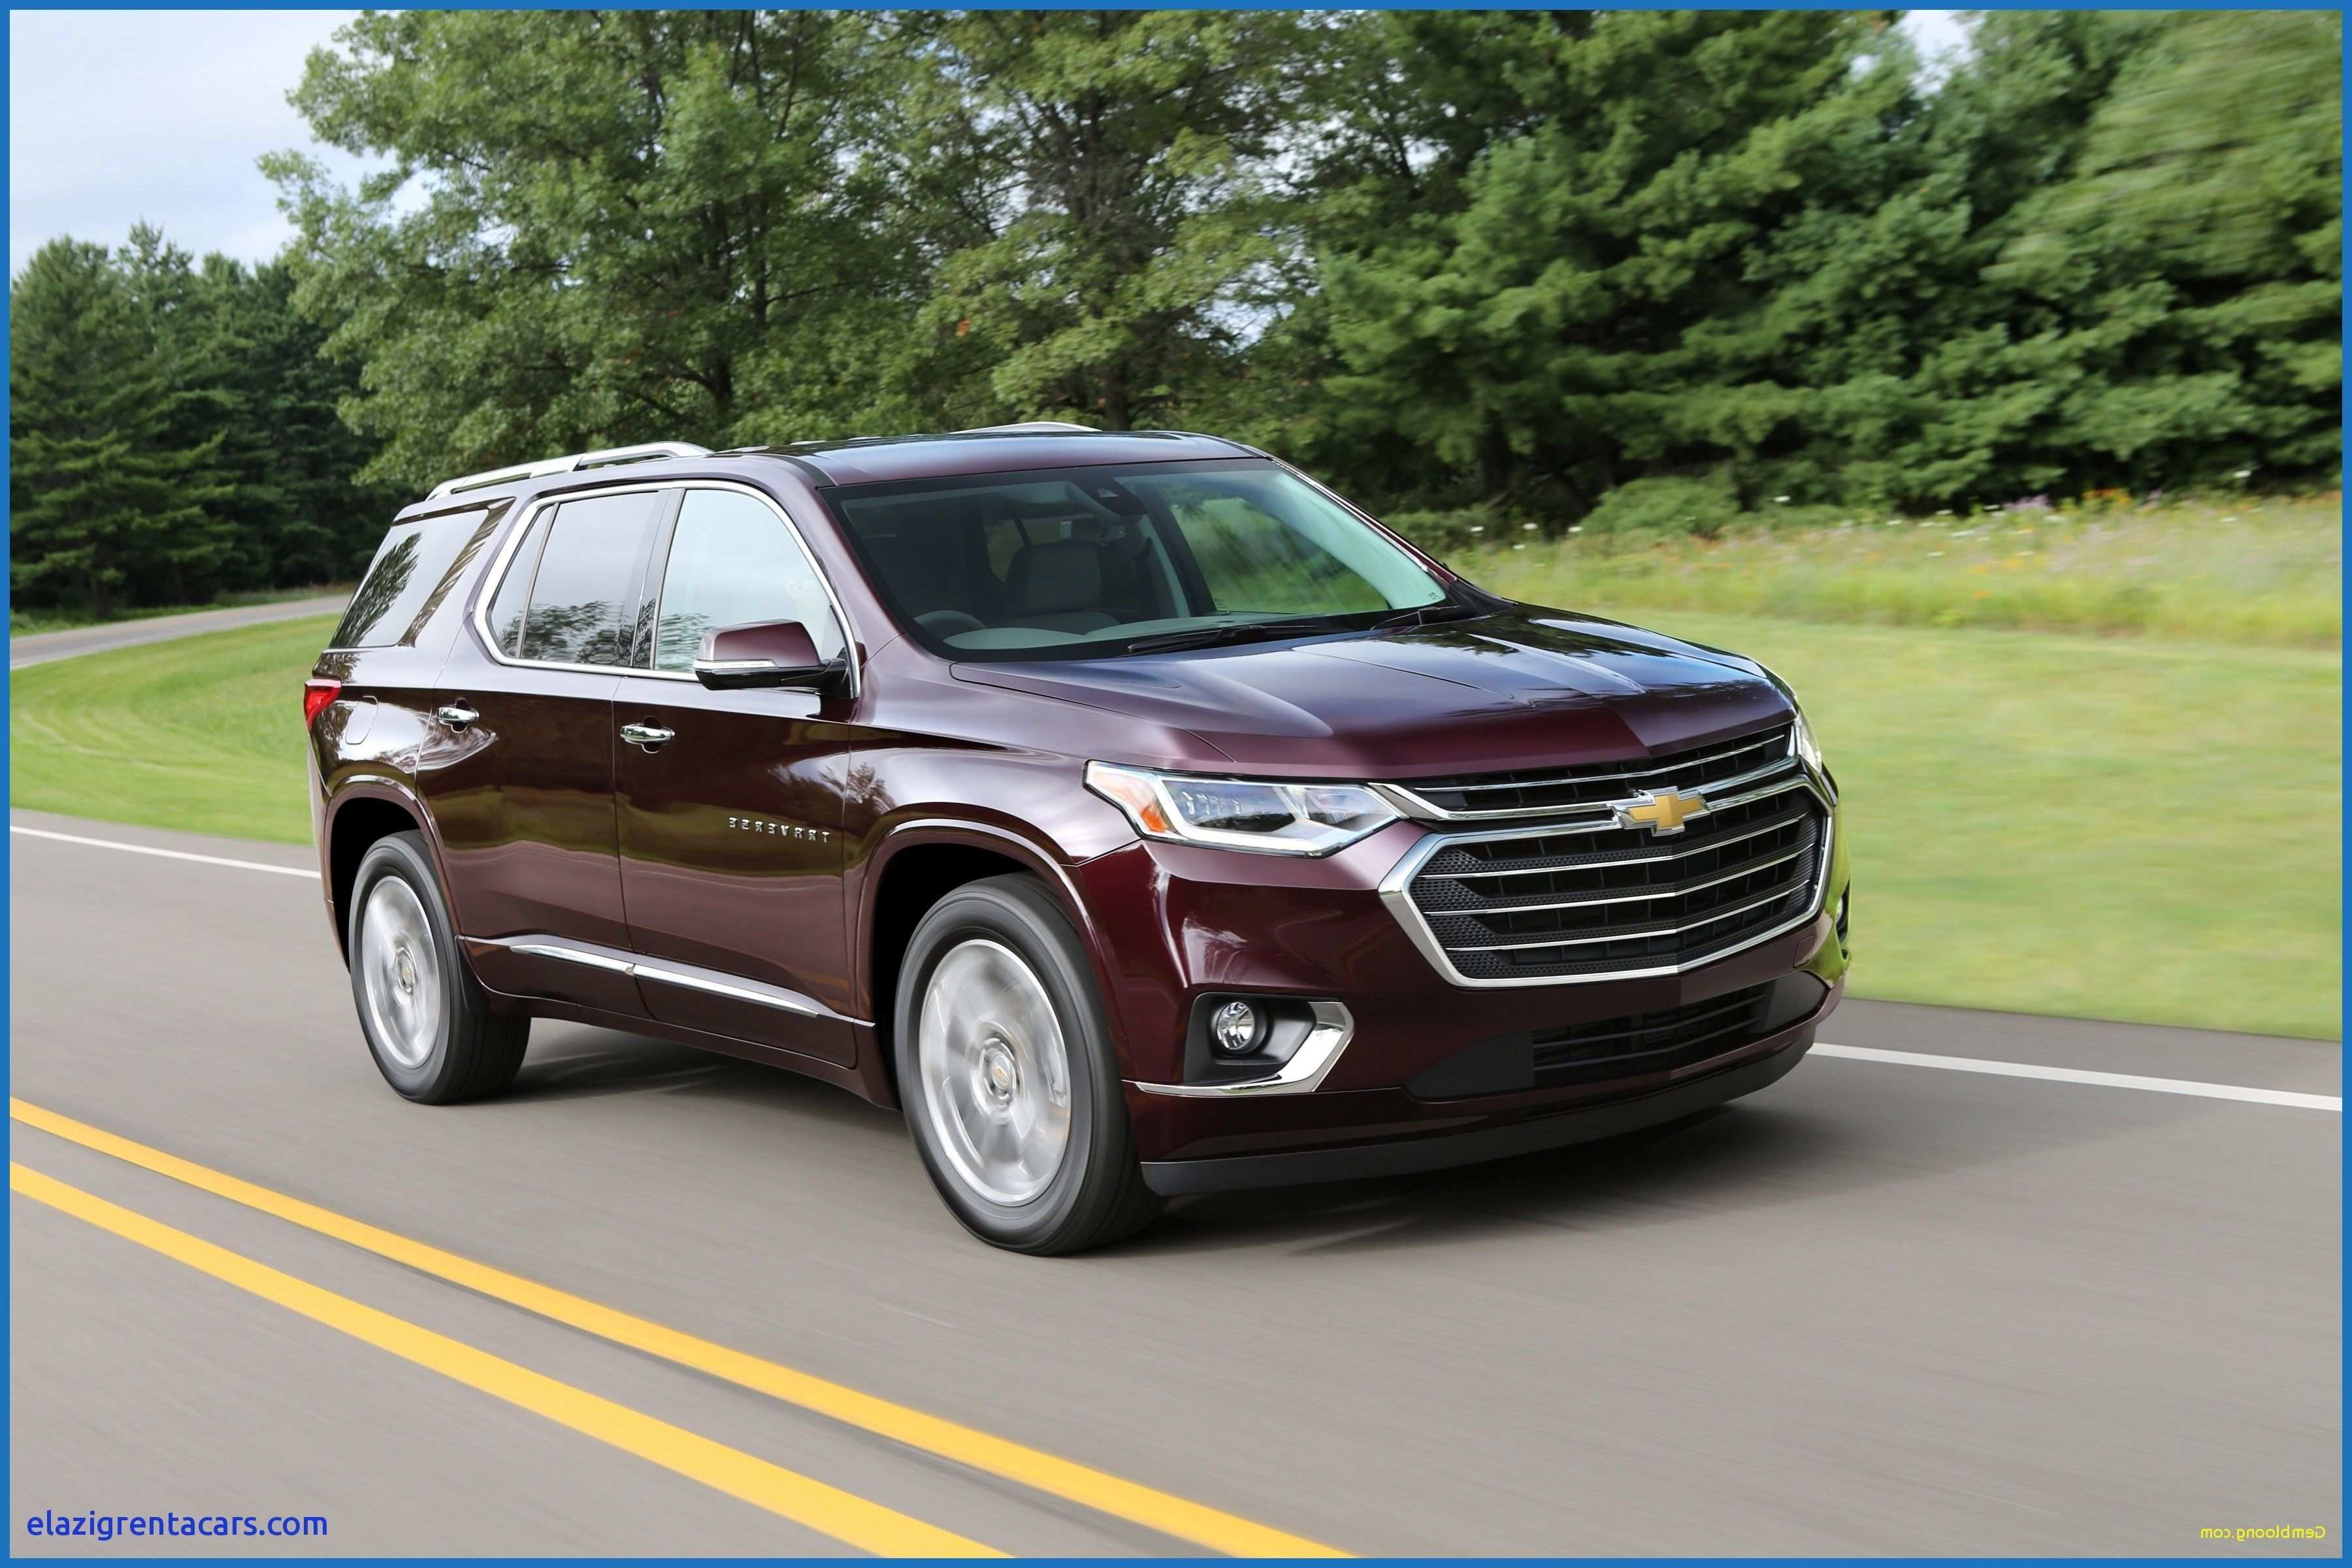 38 Great 2020 Chevrolet Trailblazer Ss Engine for 2020 Chevrolet Trailblazer Ss